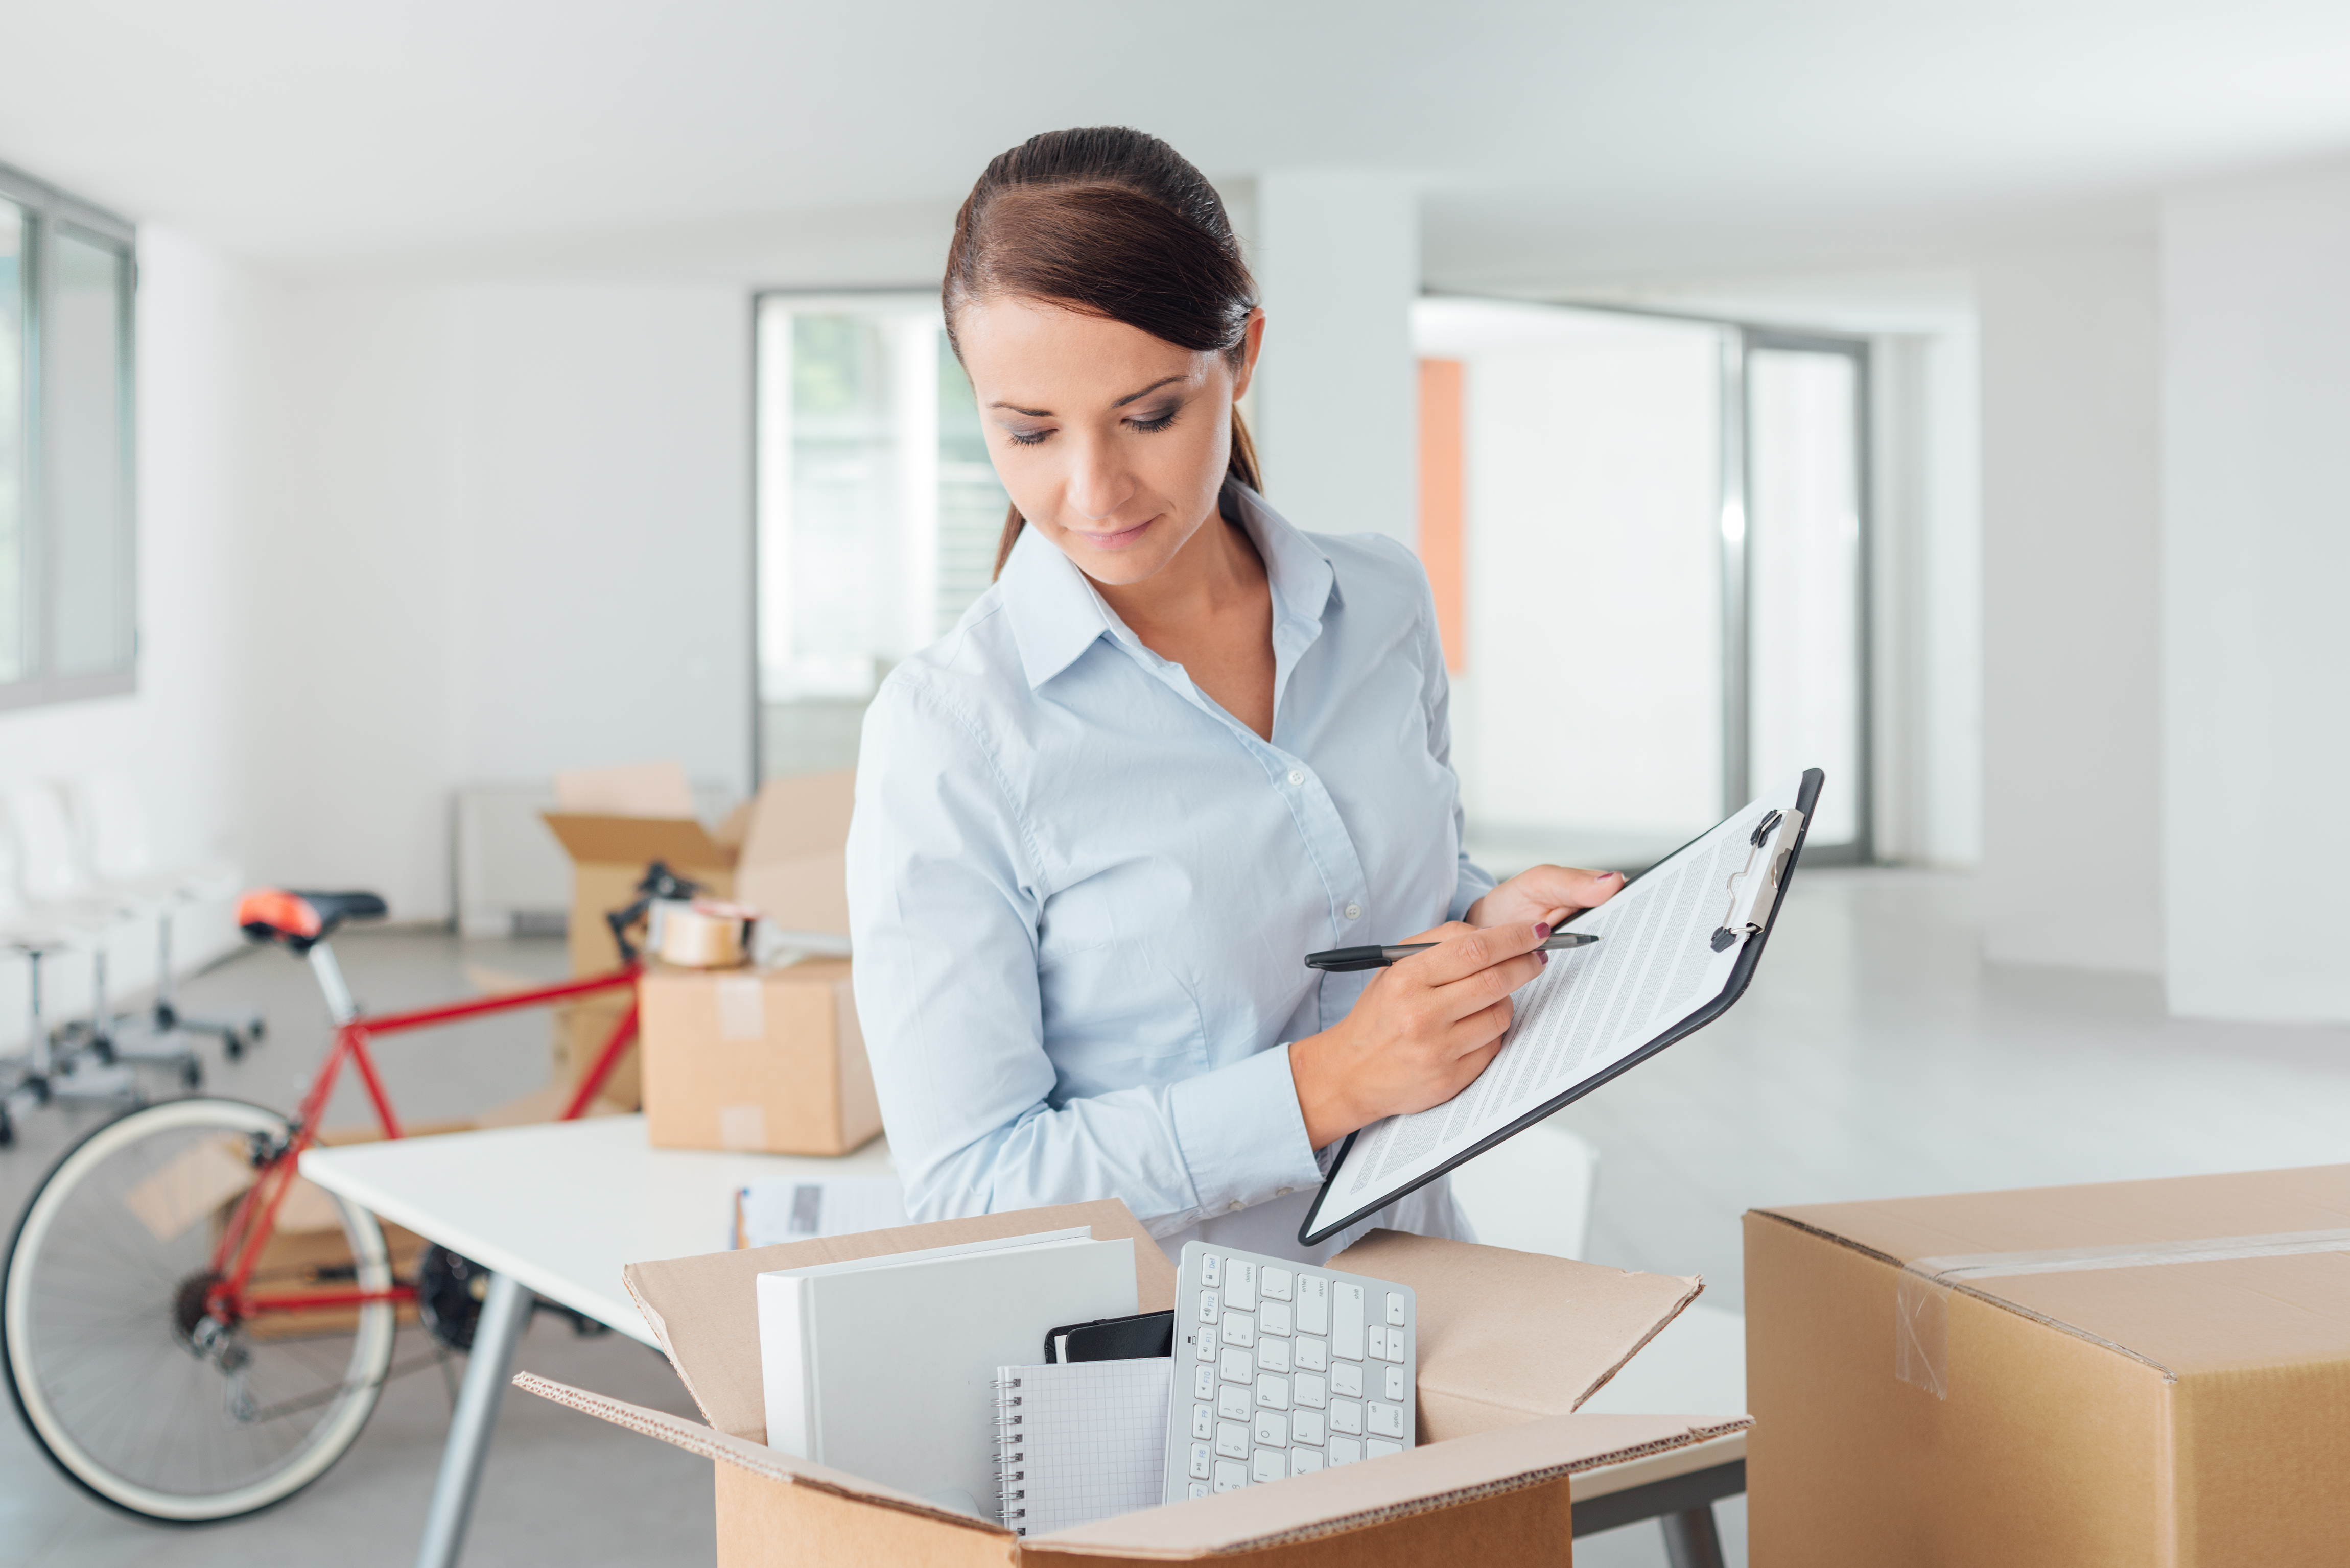 5 Big Office Relocation Mistakes to Avoid